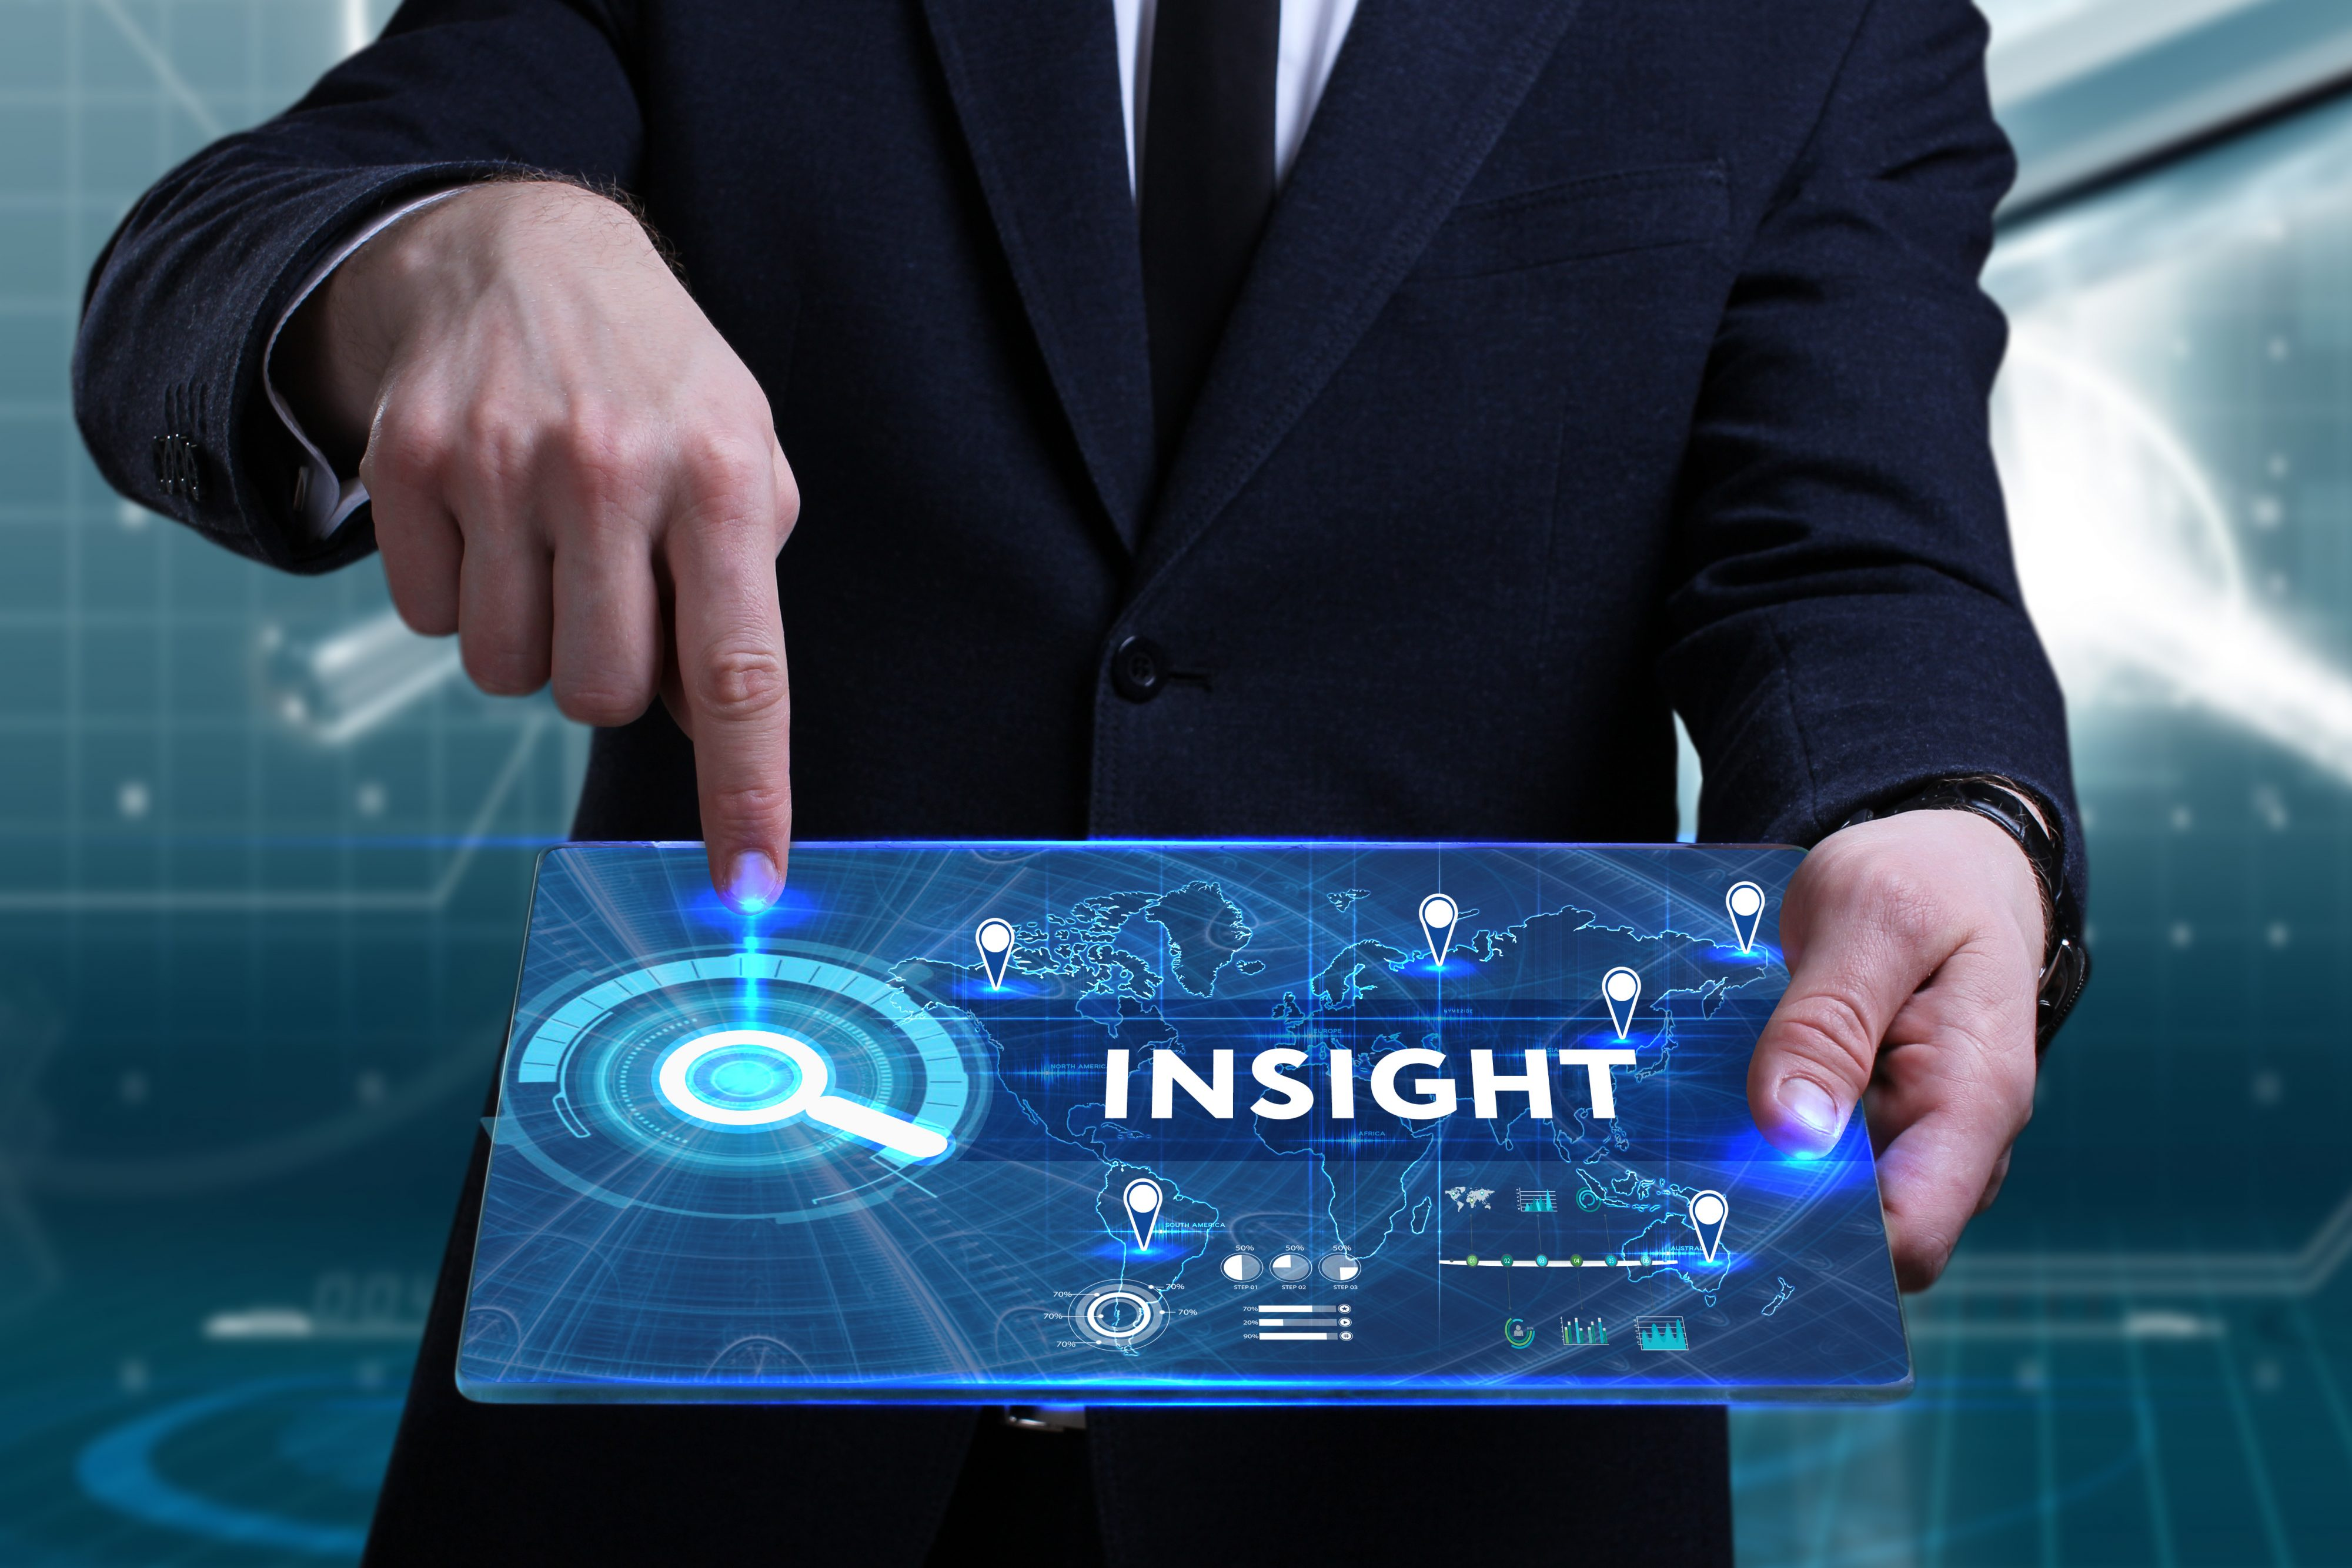 Image of man pointing to the word Insight on a screen he is holding in front of him.